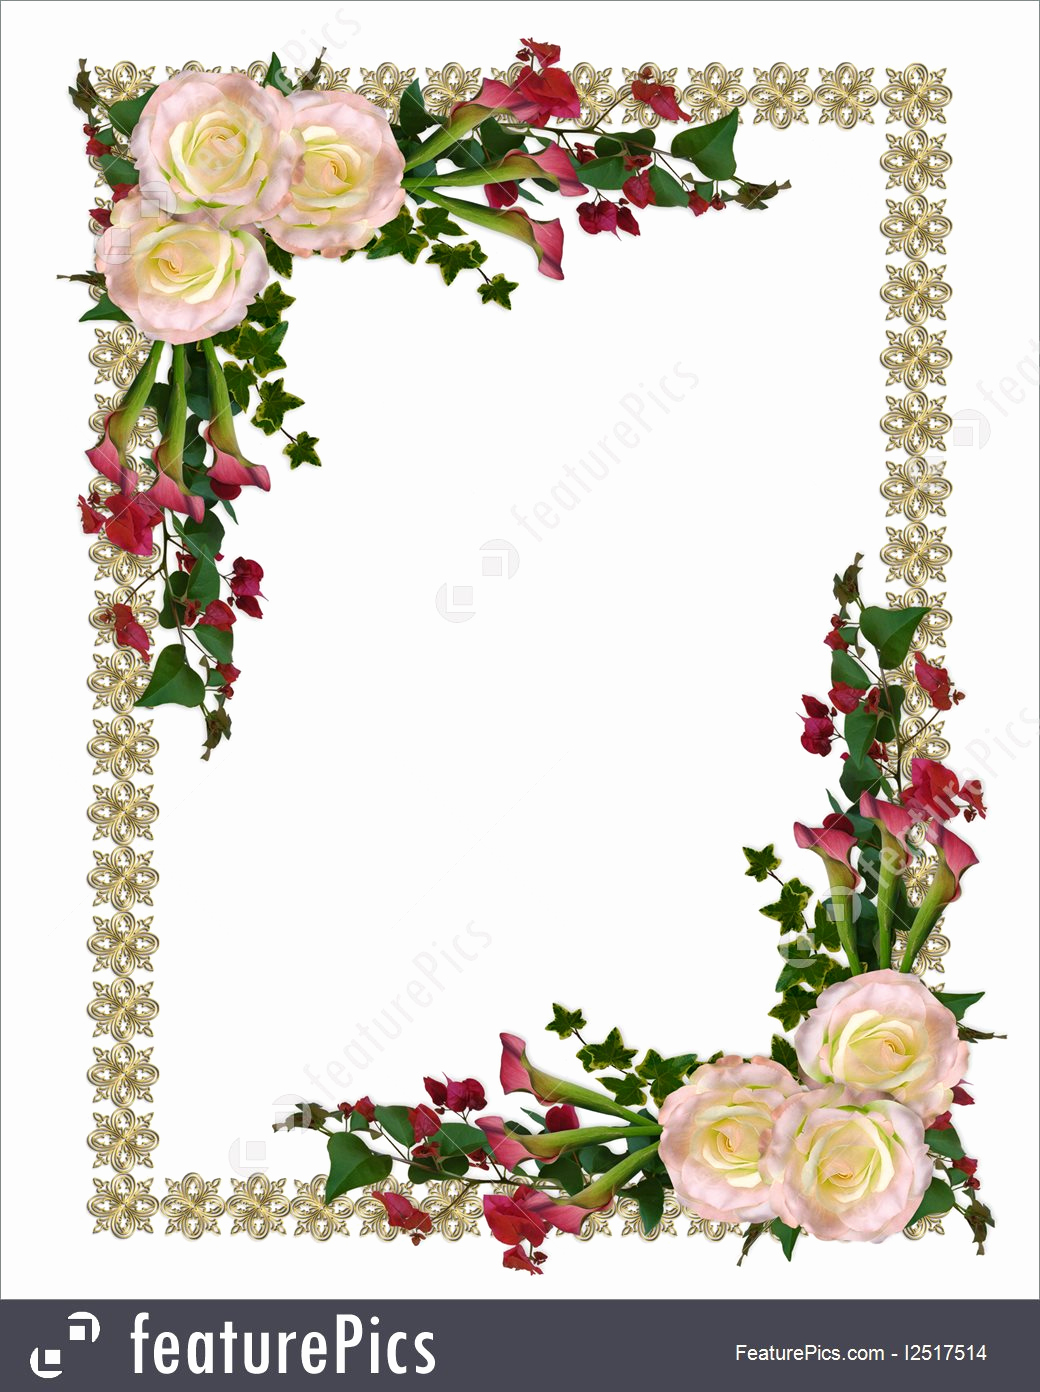 Wedding Invitation Border Design Unique Templates Wedding Invitation Floral Border Stock